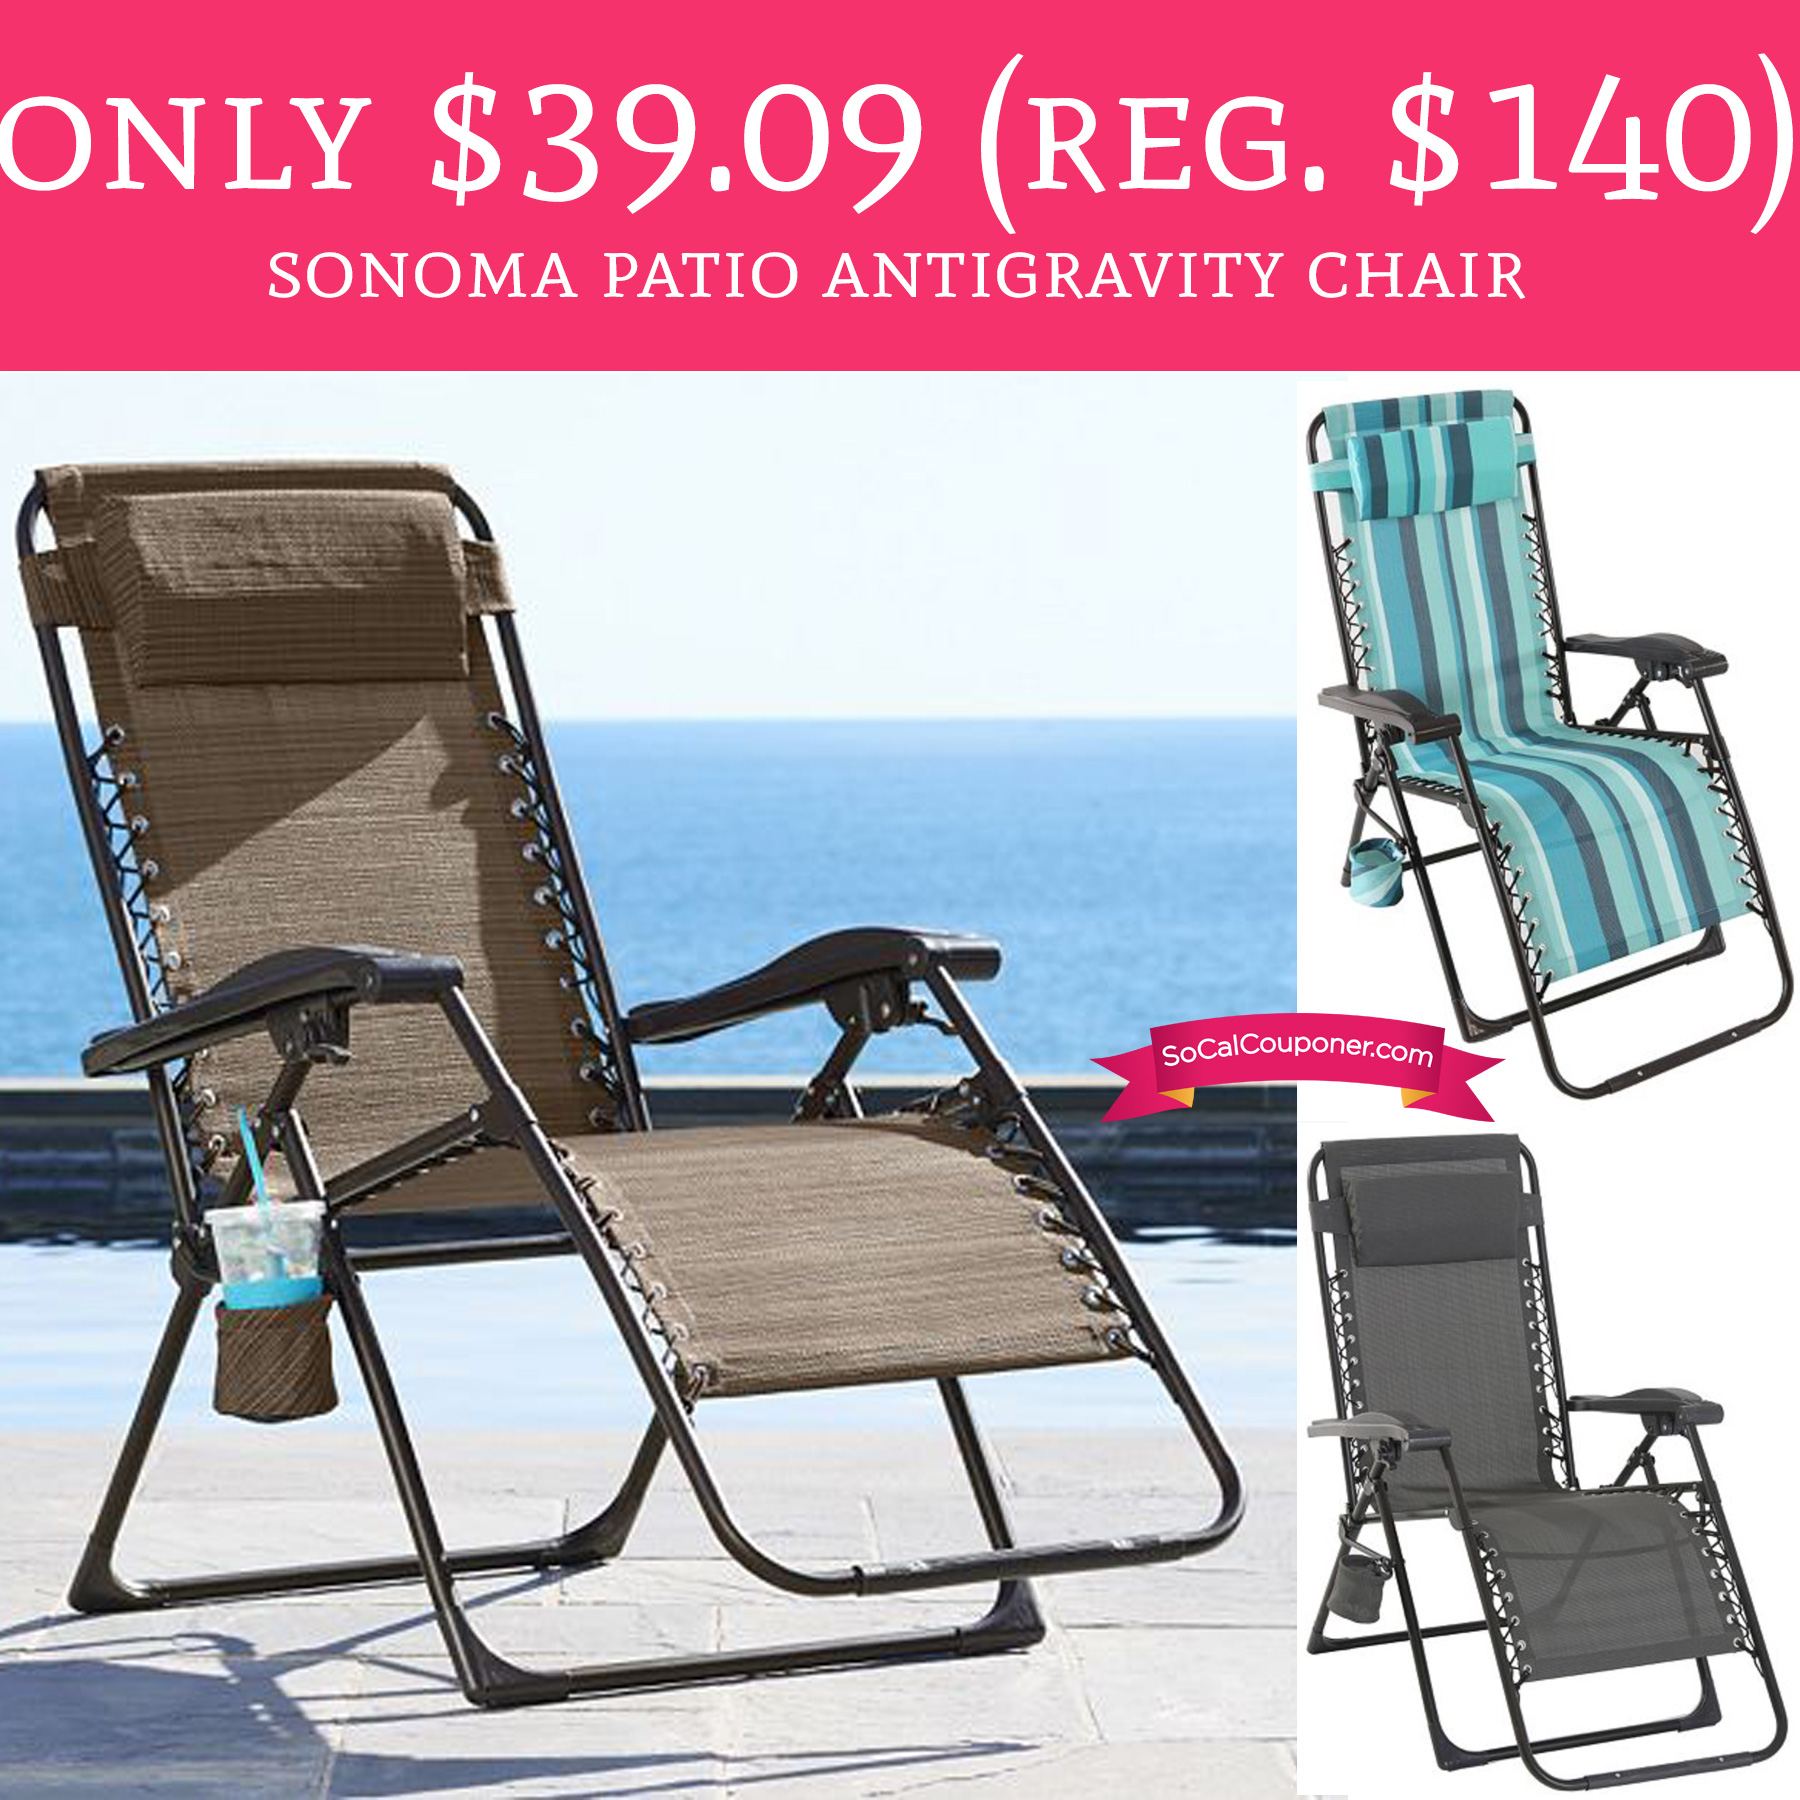 Sonoma Outdoors Antigravity Chair Only 39 09 Regular 140 Sonoma Patio Antigravity Chair